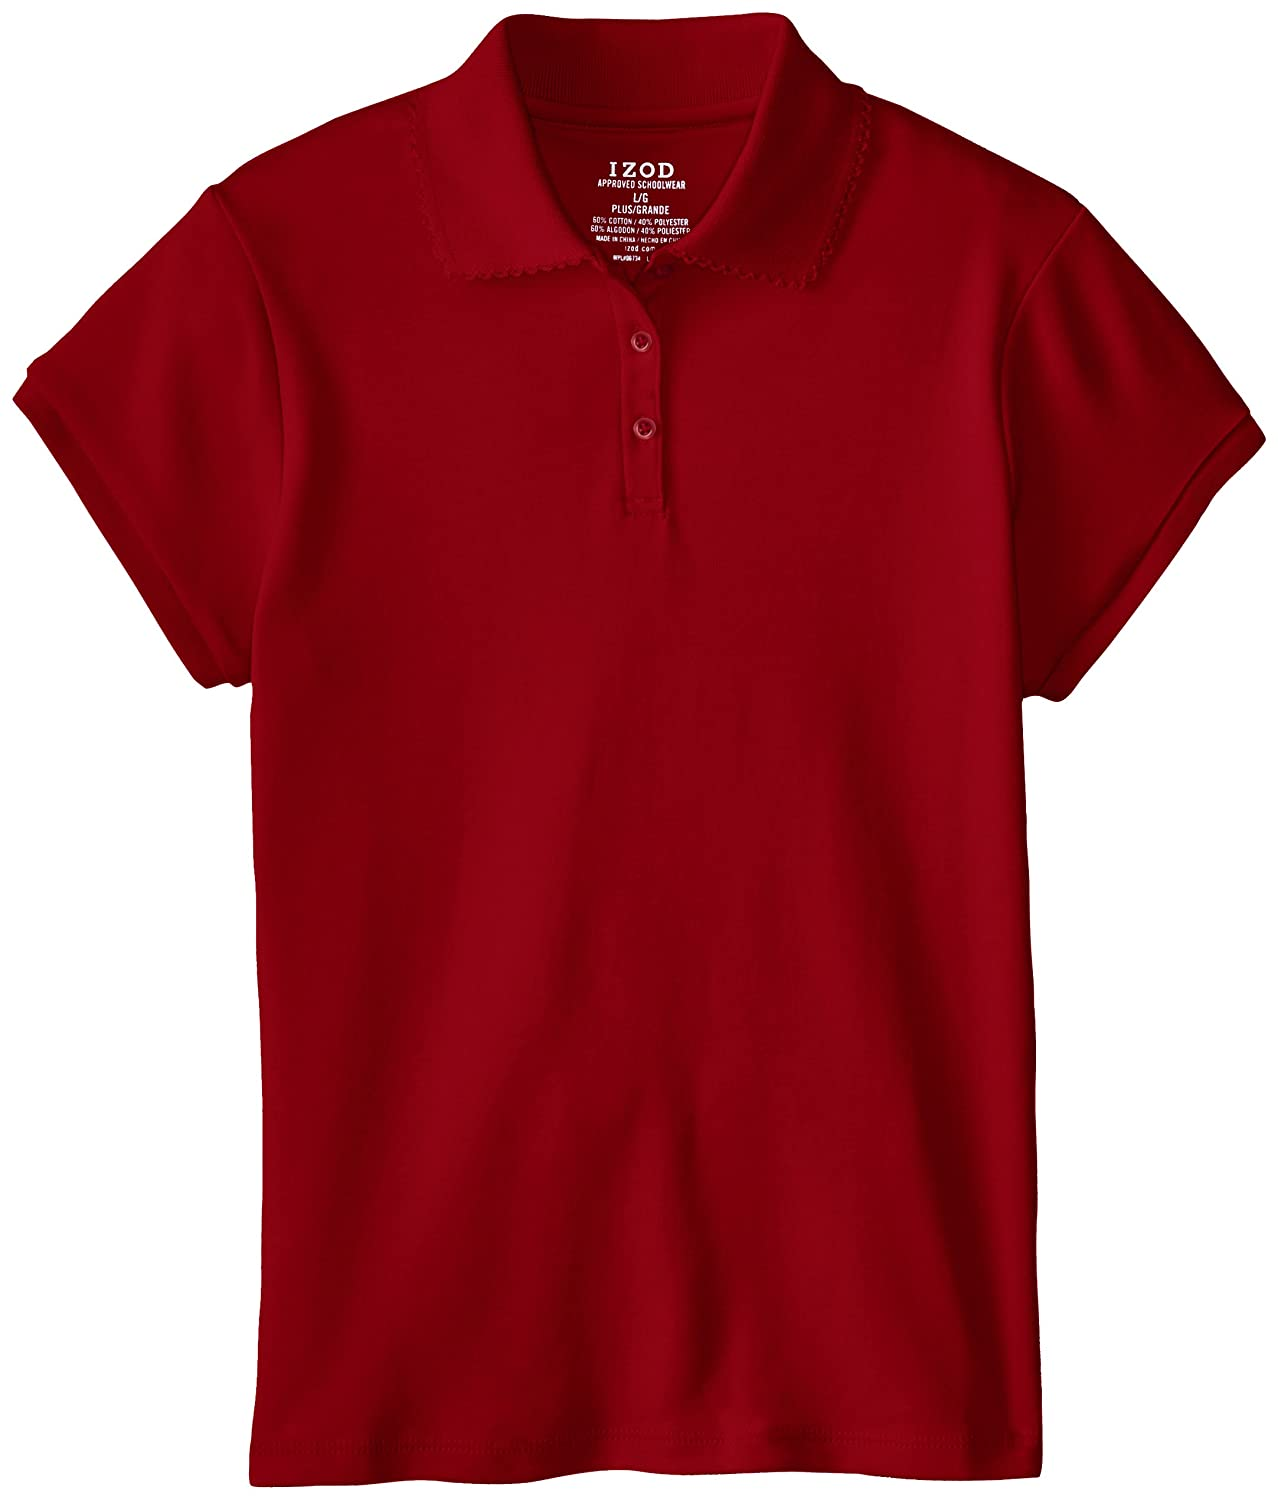 Izod Big Girls' Plus Size Short Sleeve Polo Red Medium Plus Izod Girls 7-16